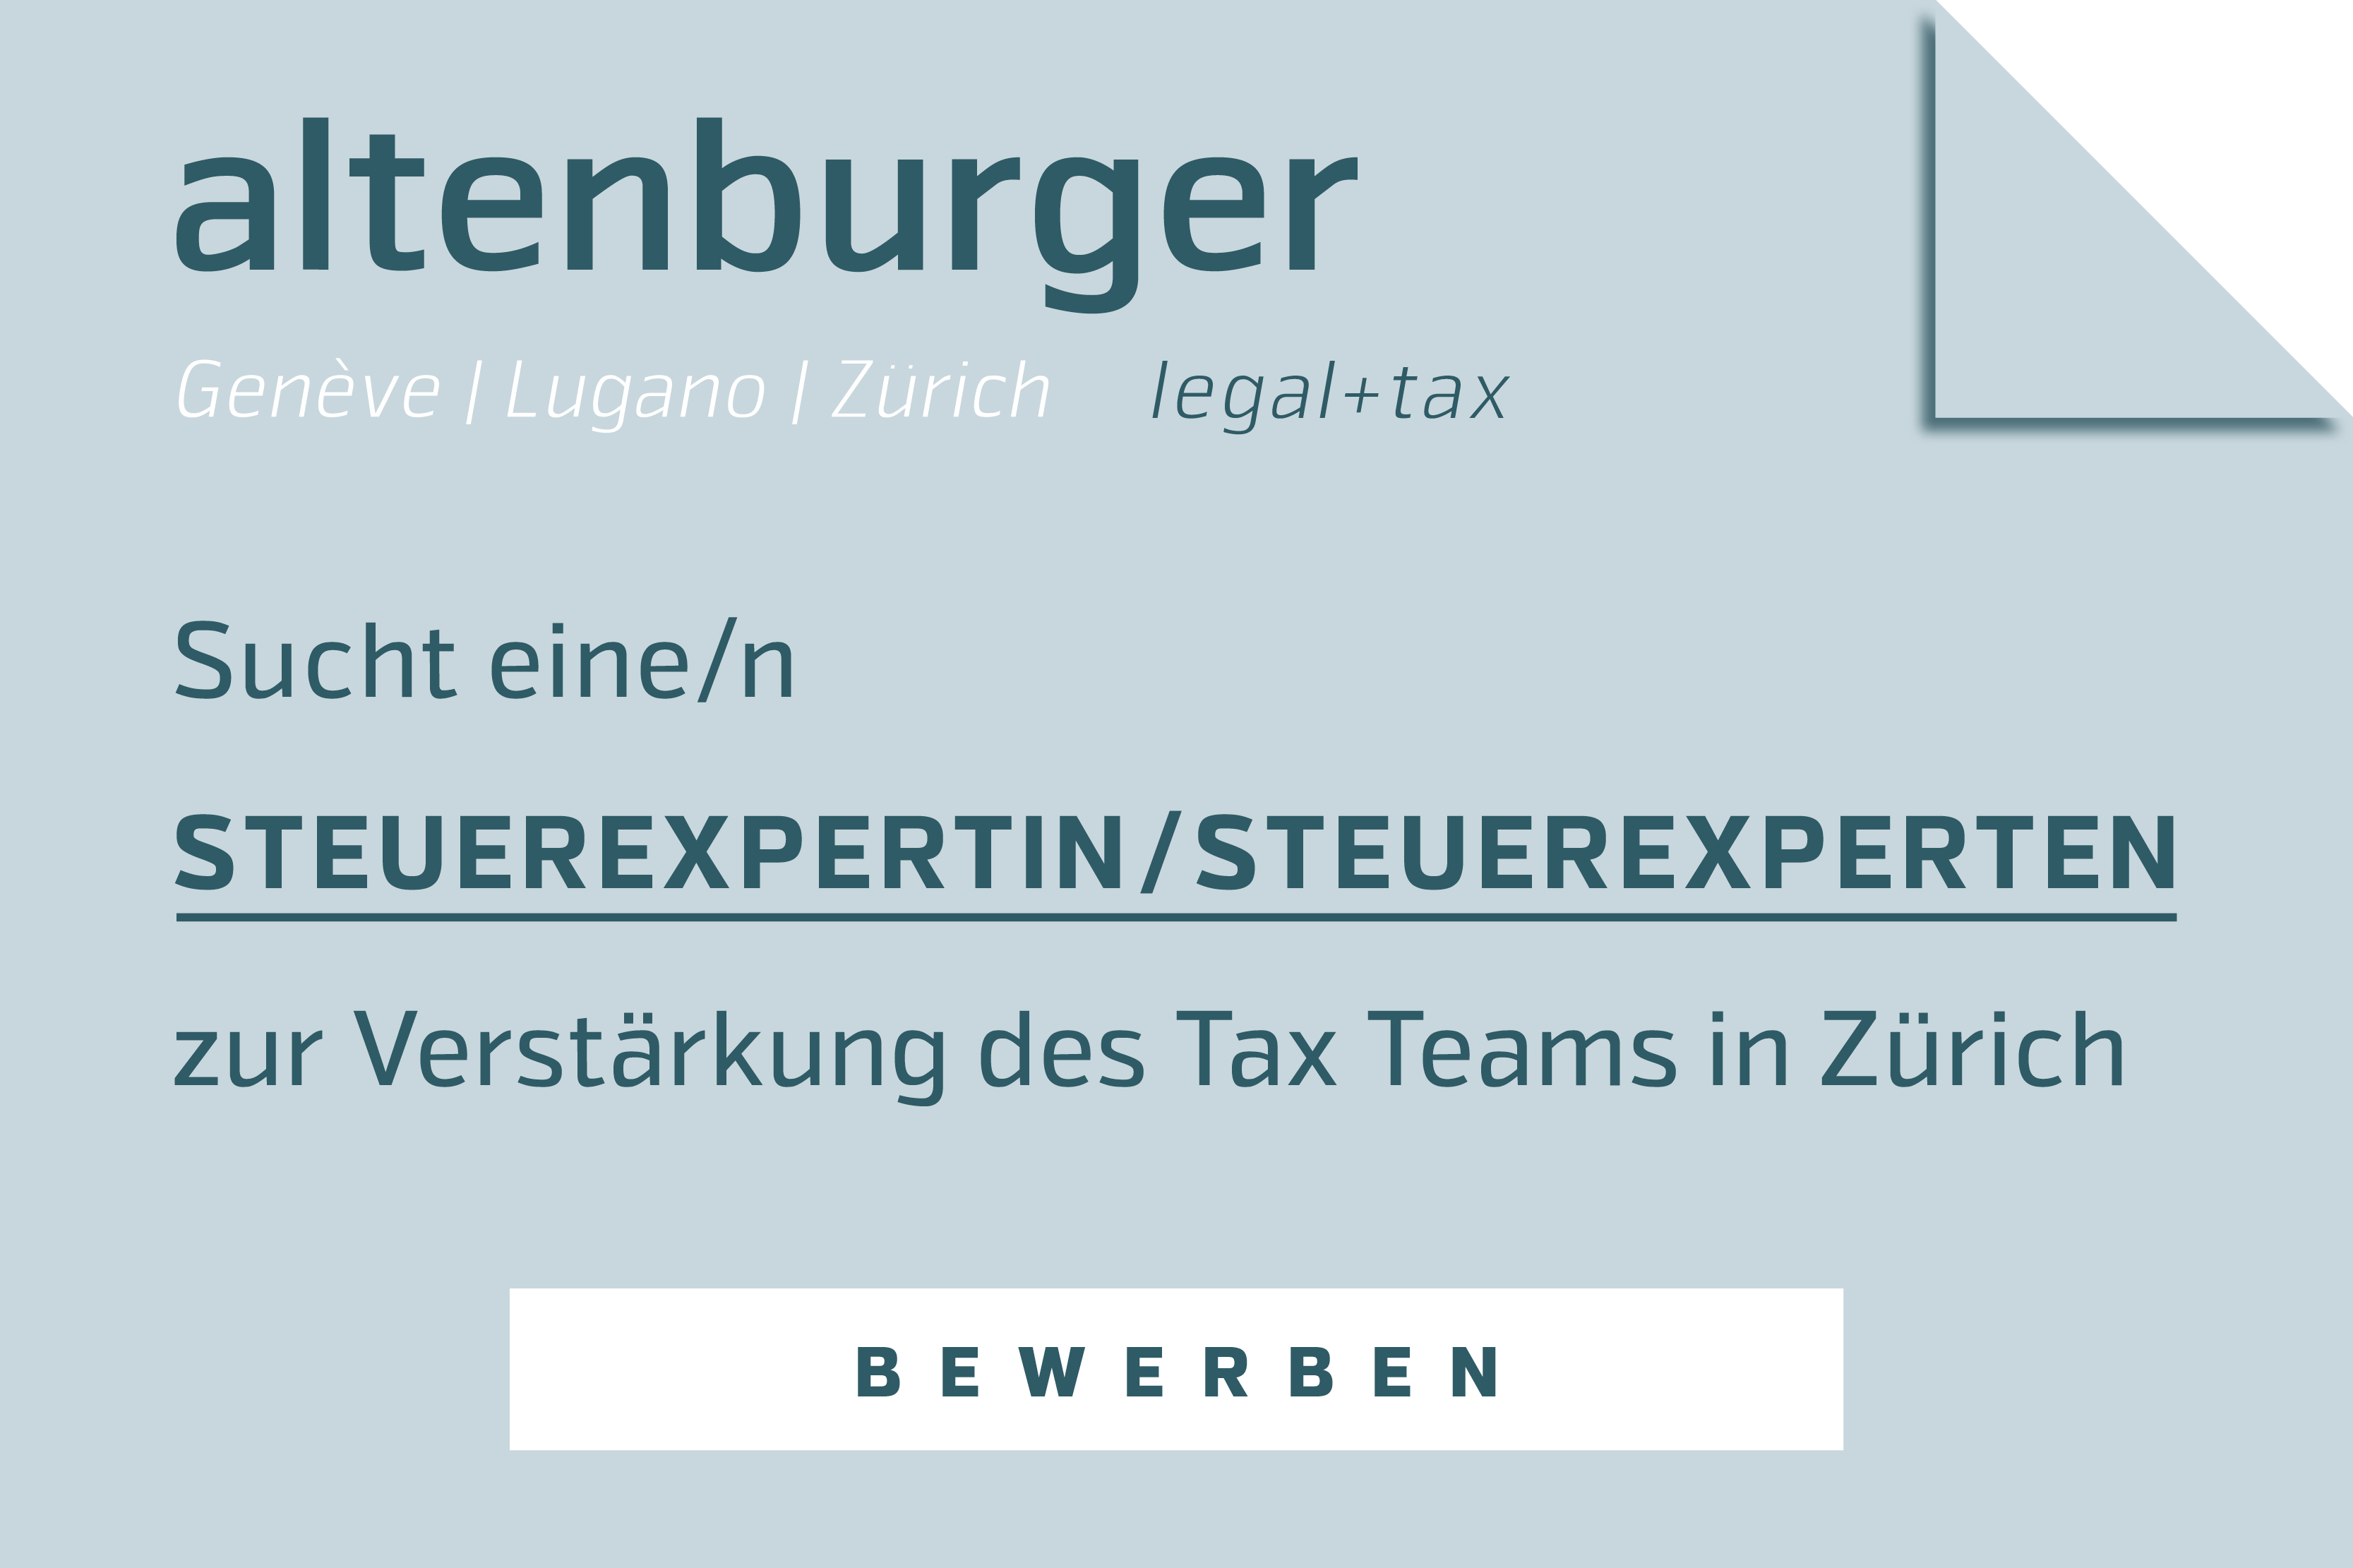 Steuerexpertin / Steuerexperten - Altenburger Ltd legal + tax